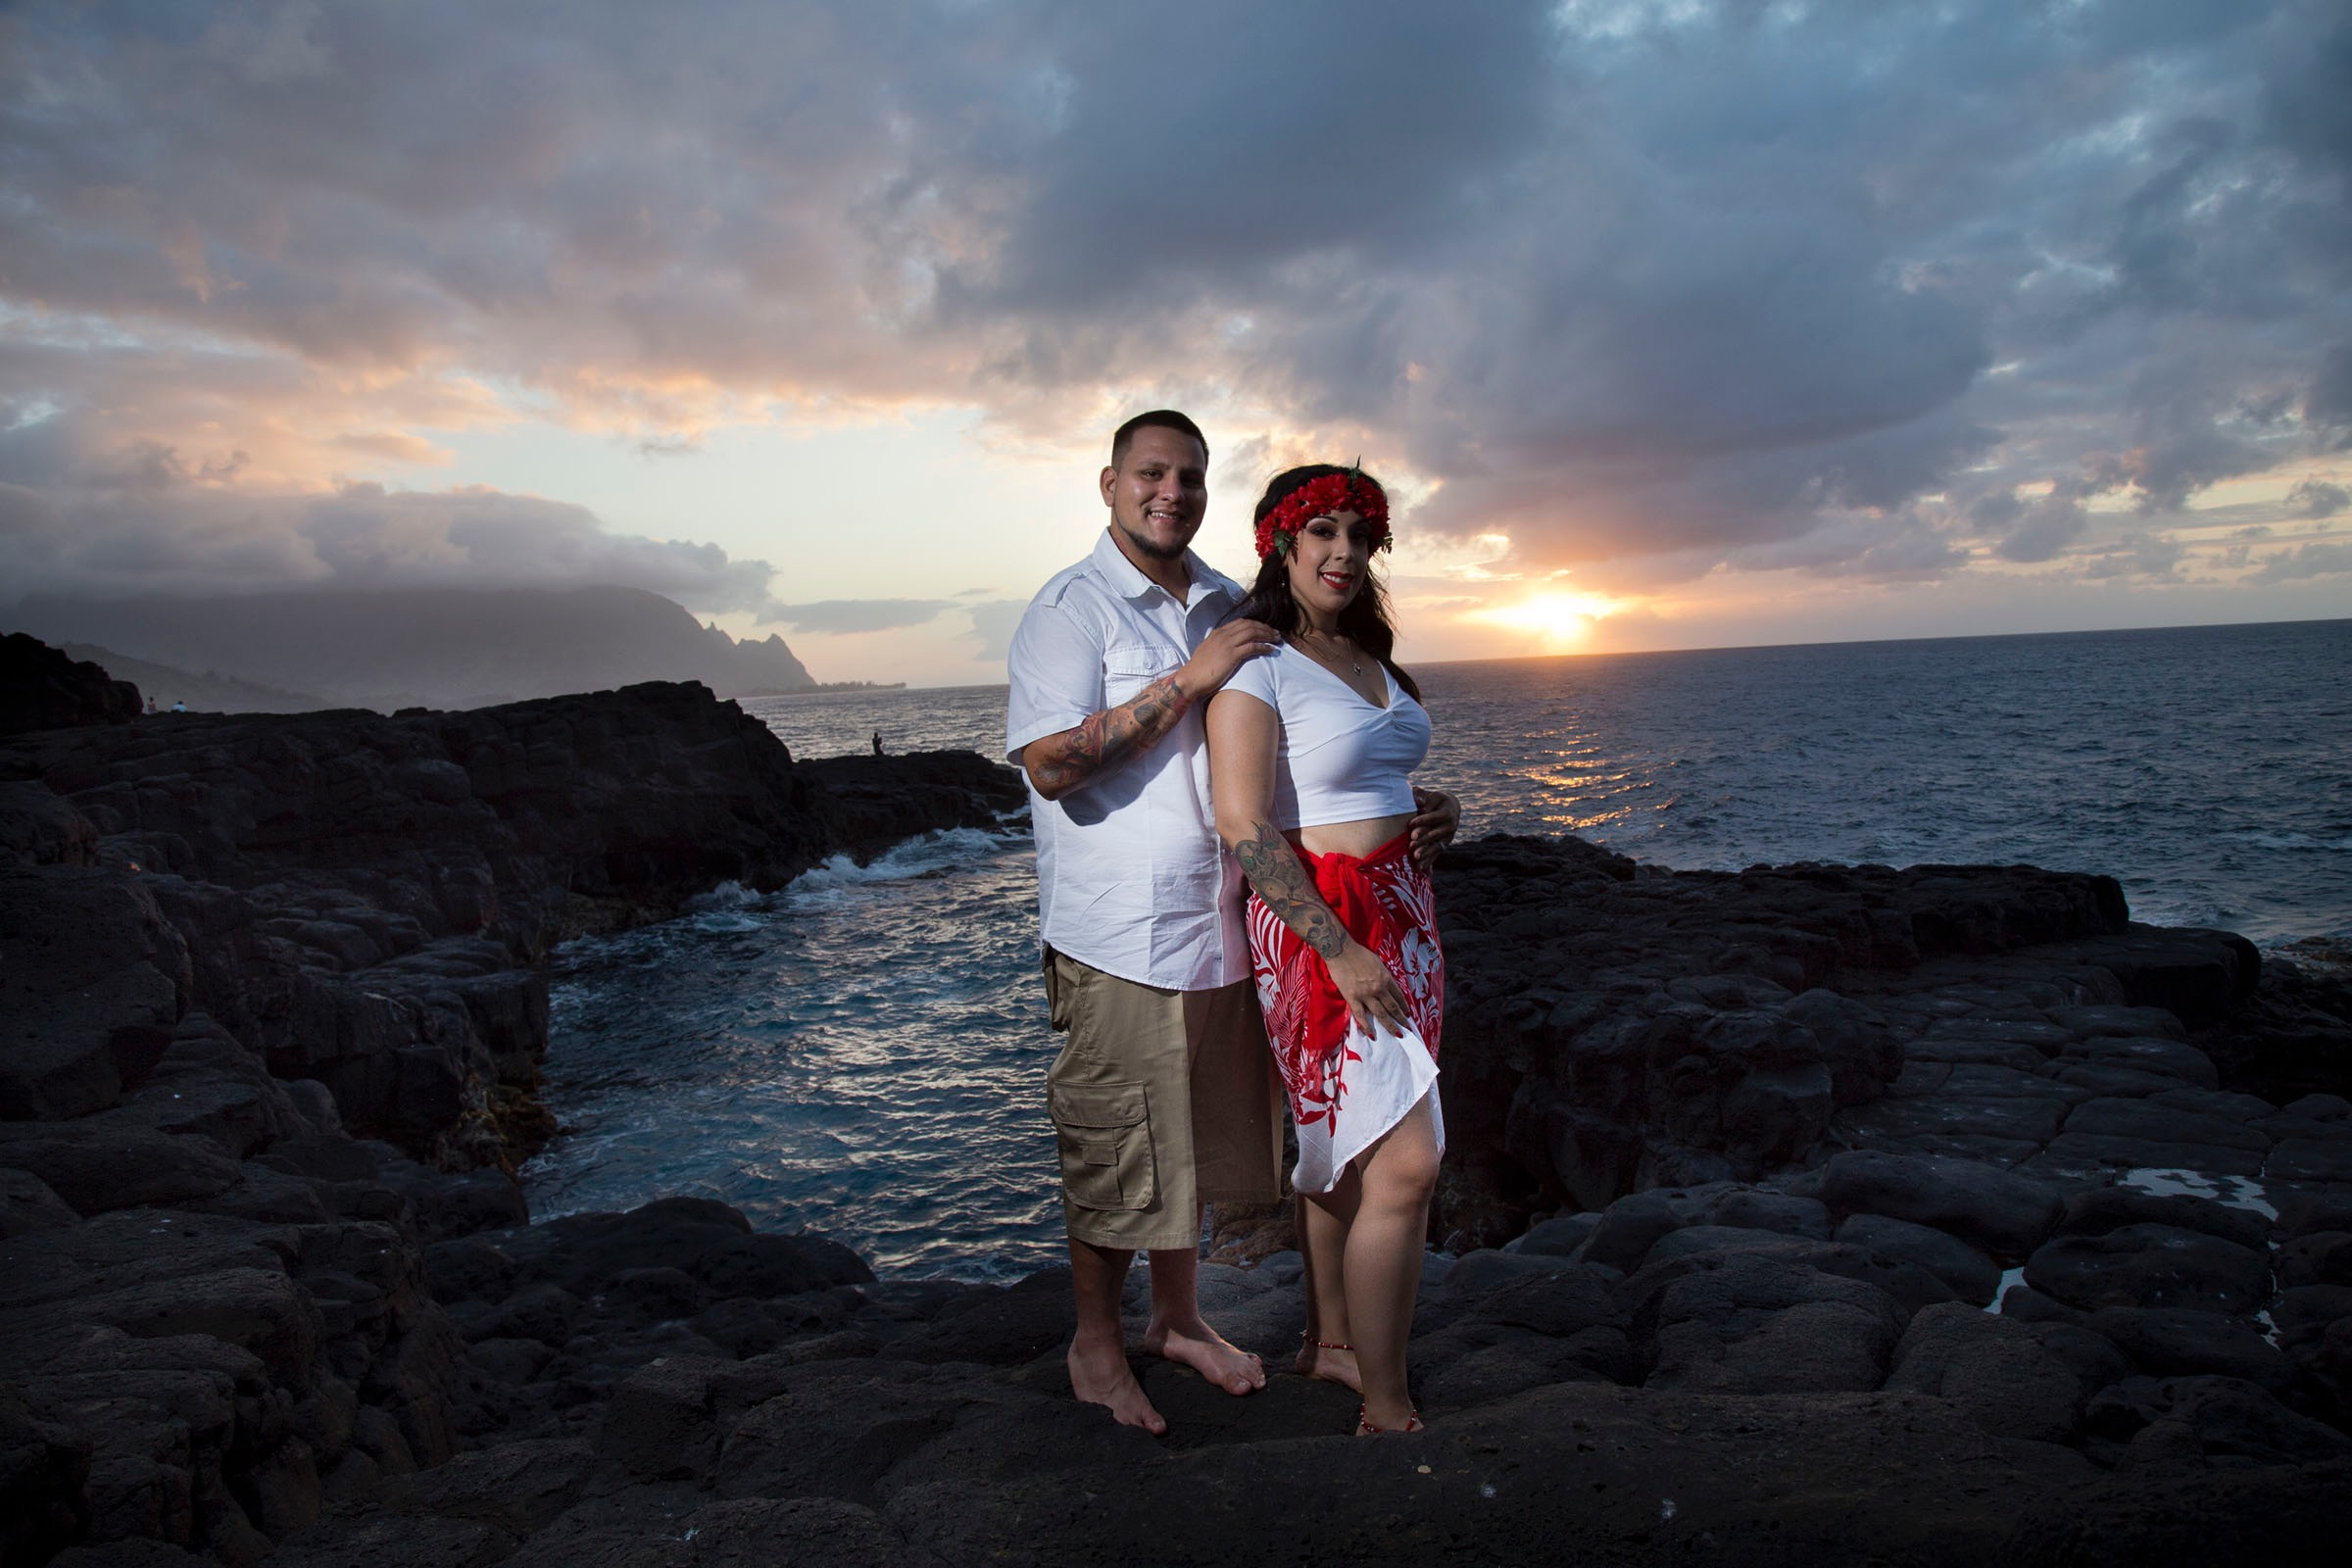 Wedding videographer Difraser makes exciting Kauai wedding videos